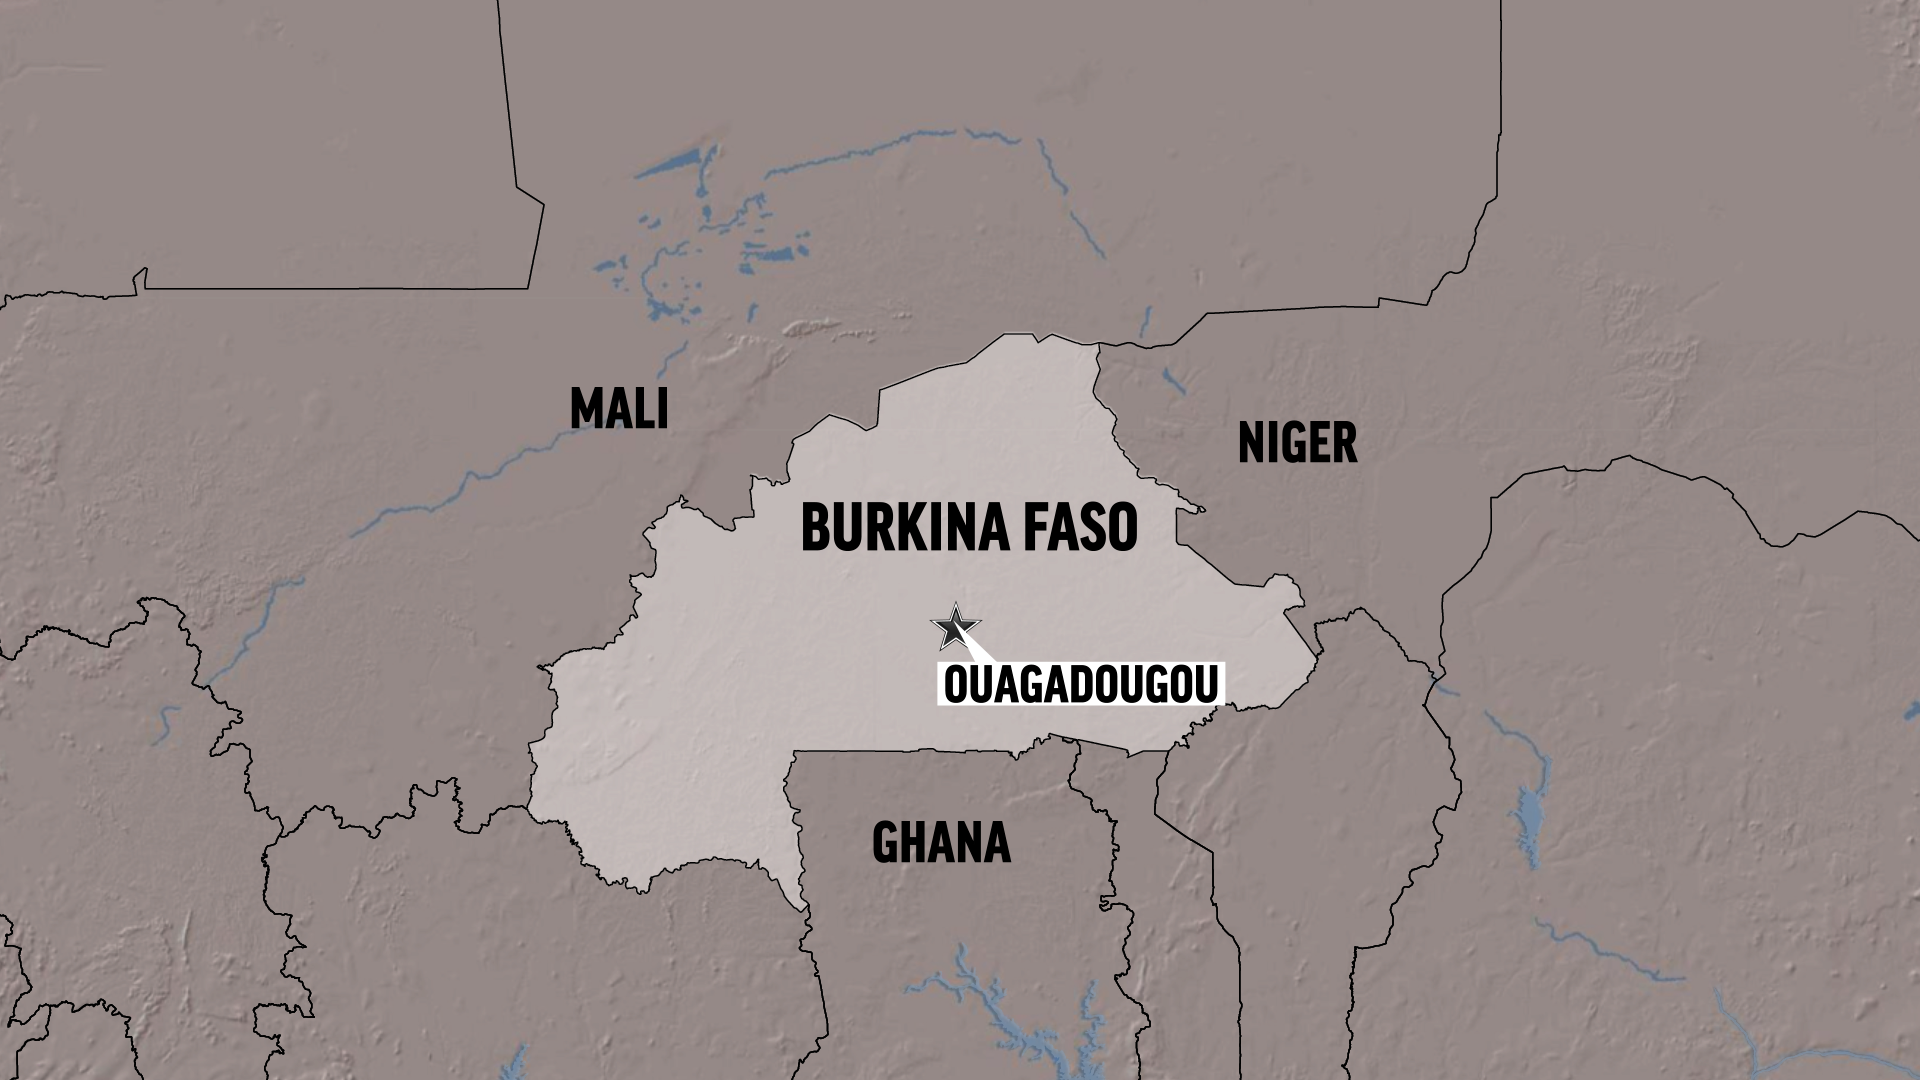 Restaurant attacked by gunmen in Burkina Faso